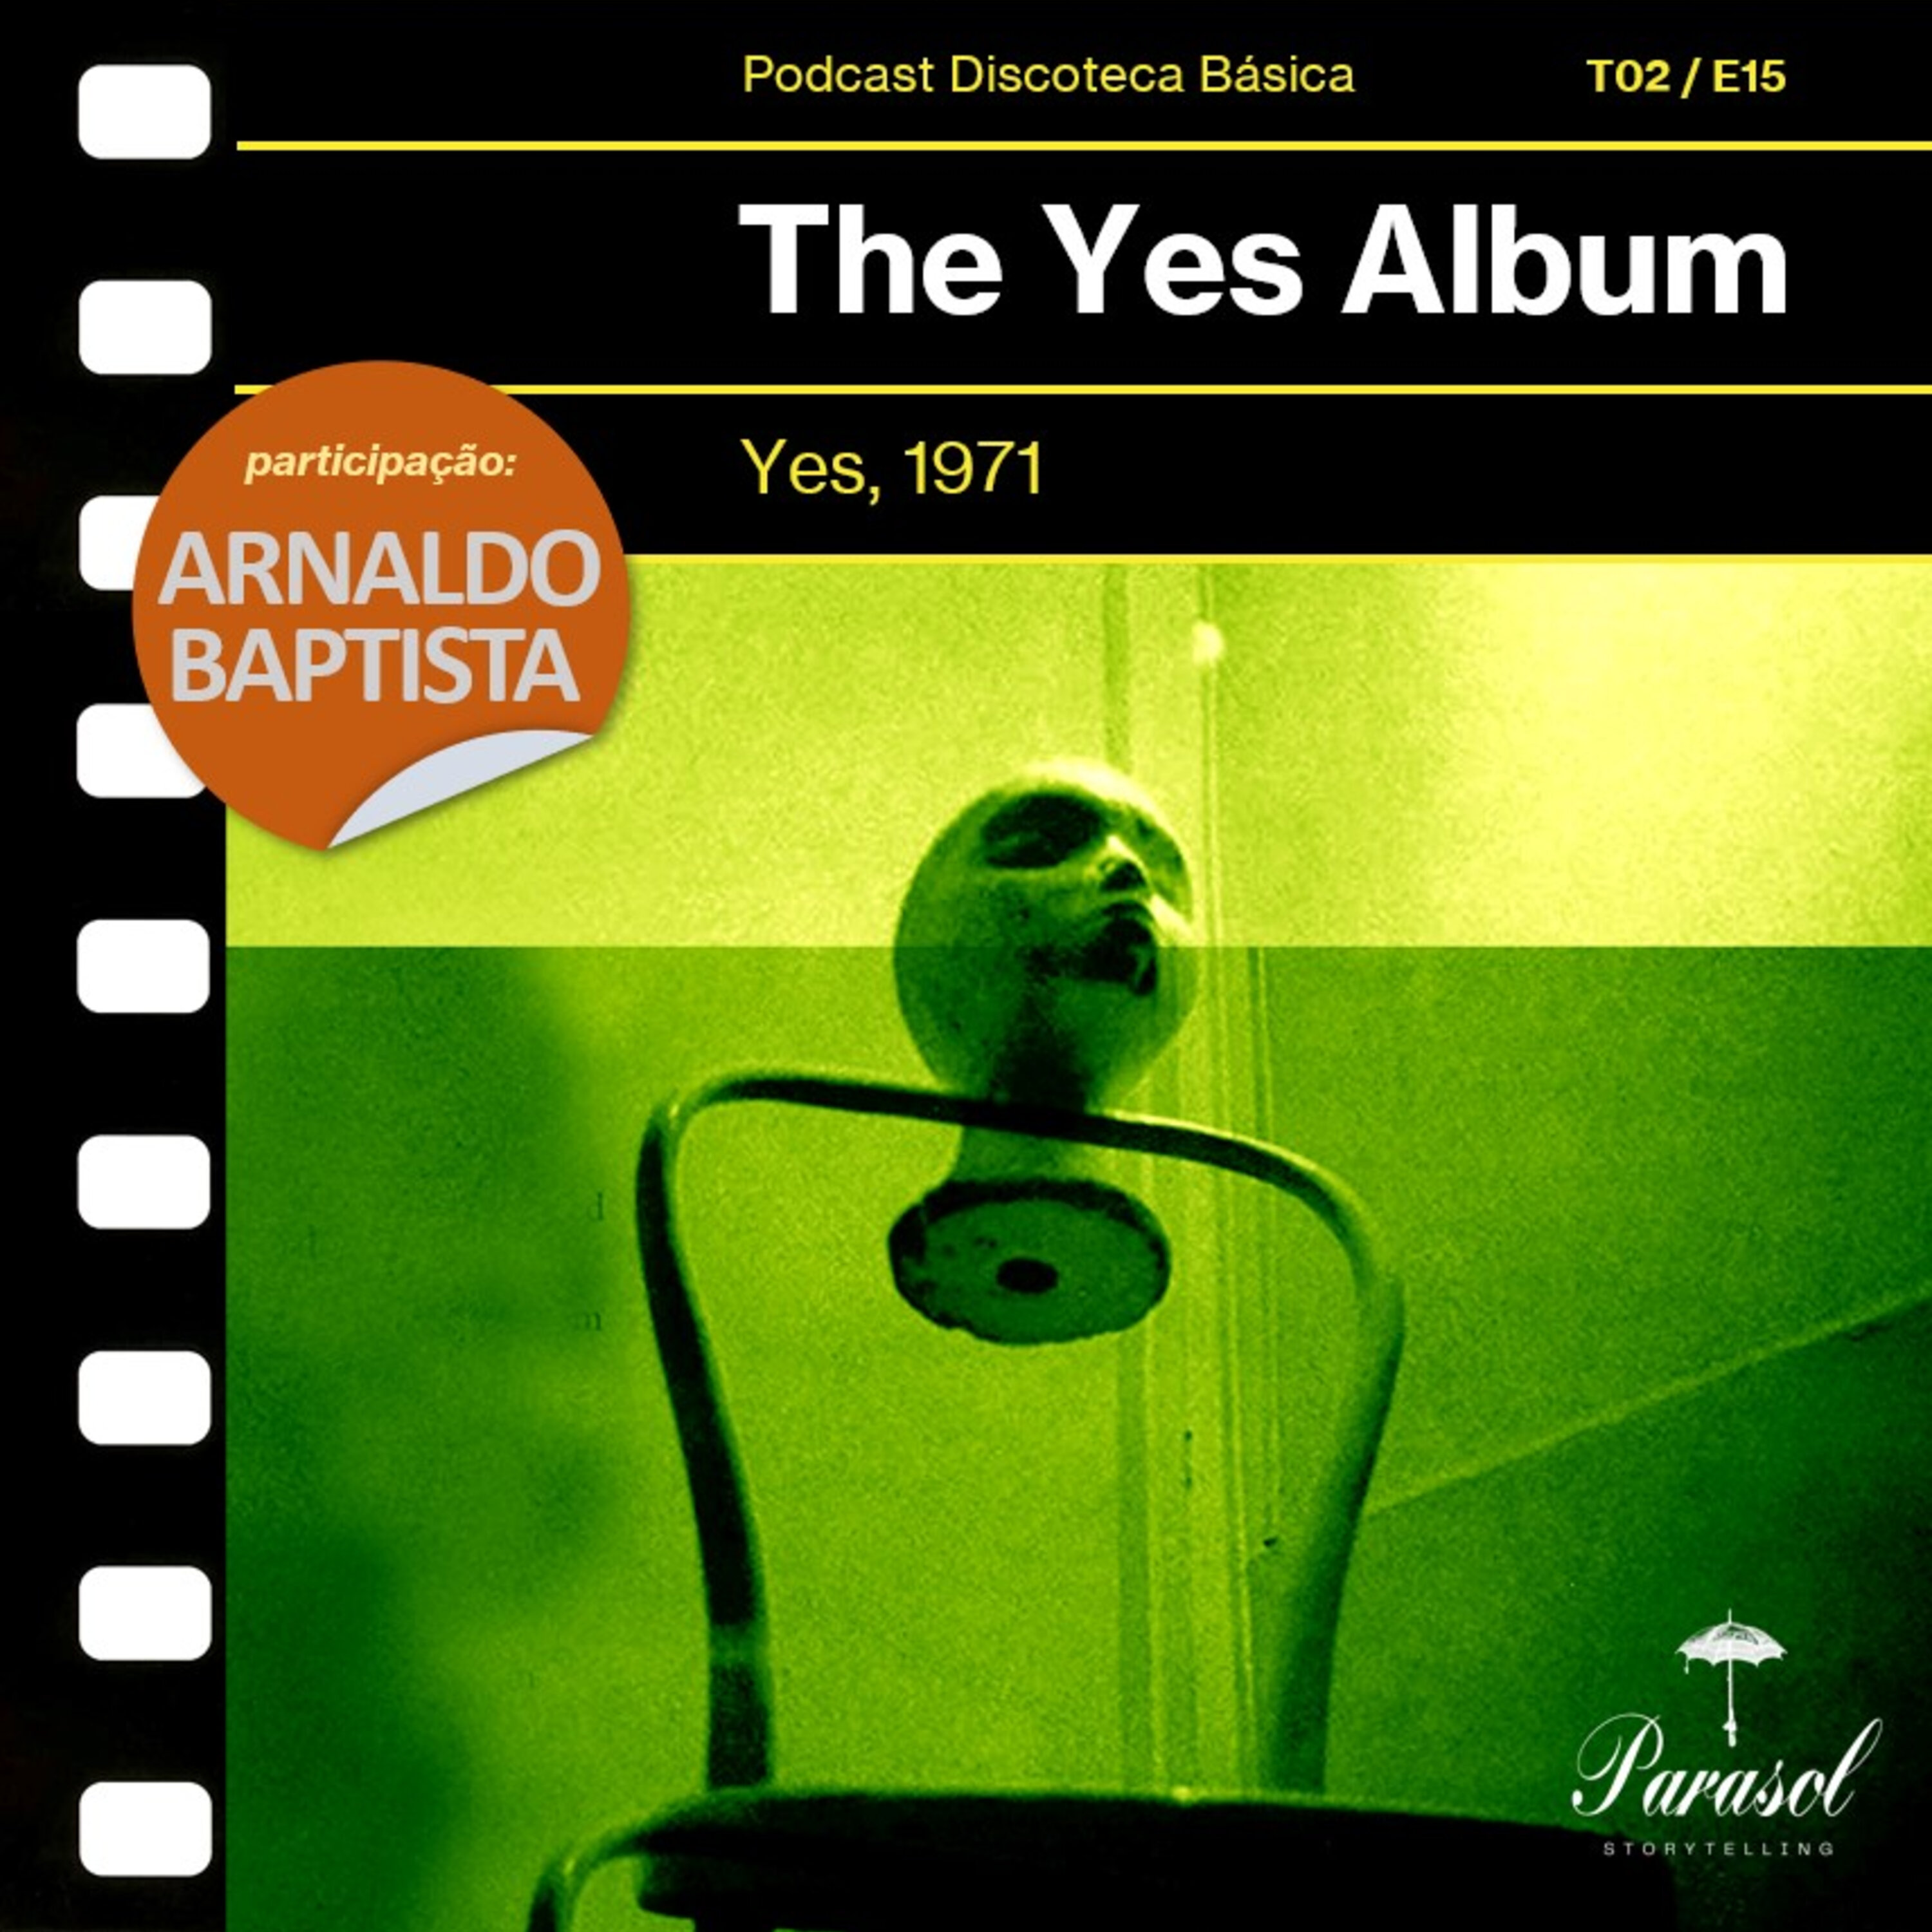 T02E15: The Yes Album - Yes (1971)